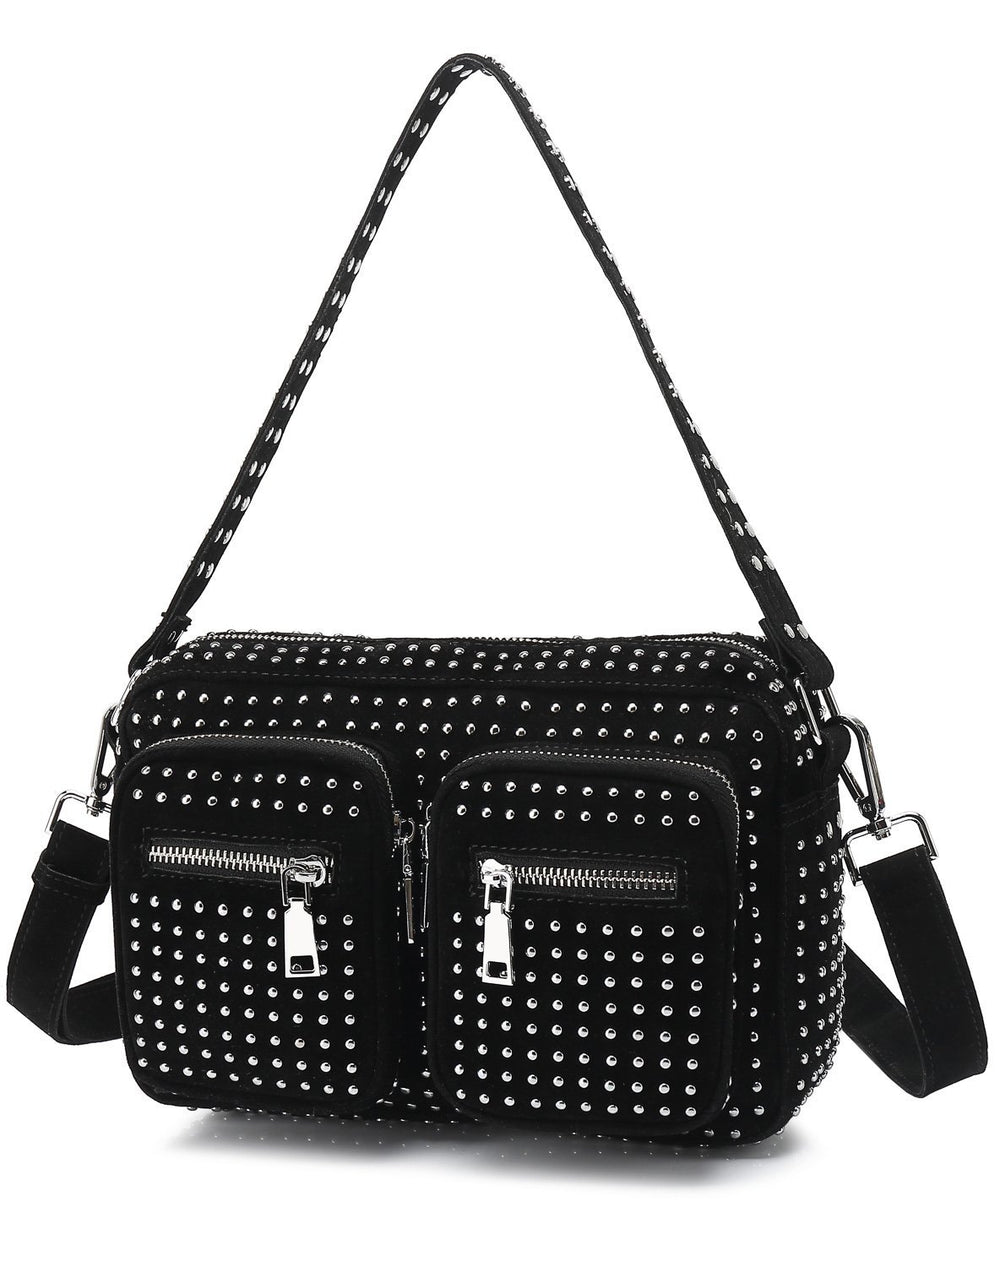 Noella Celina crossover bag black all studs - Online-Mode